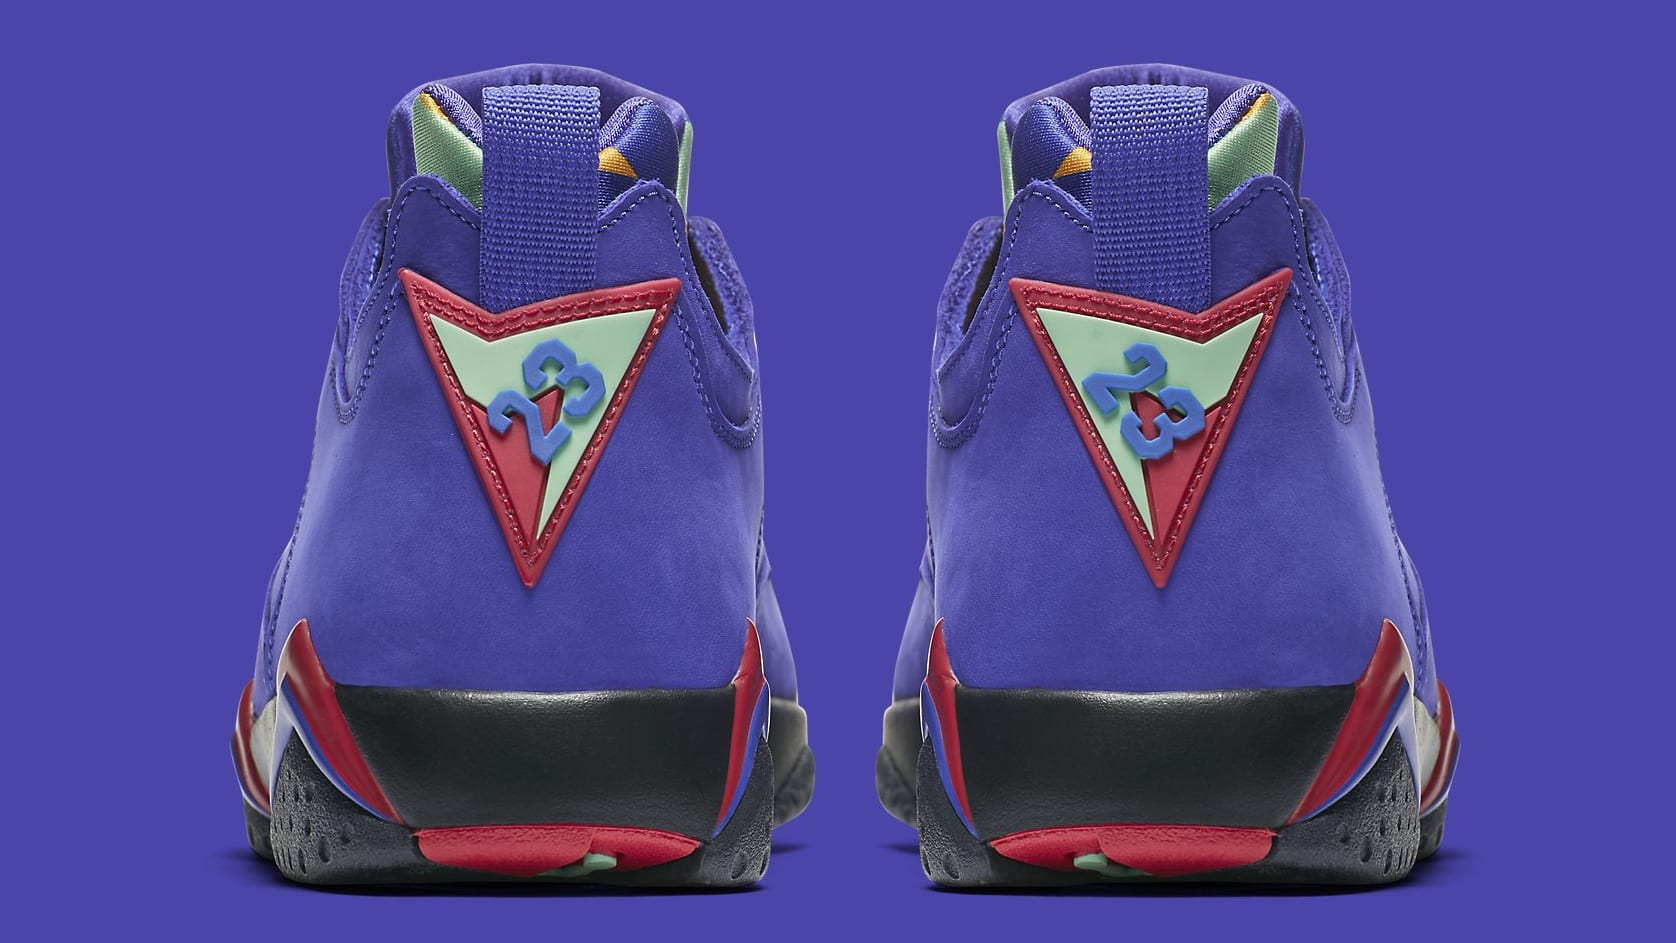 679af0996677 ... promo code for image via nike air jordan 7 vii low bright concord  release date ar4422